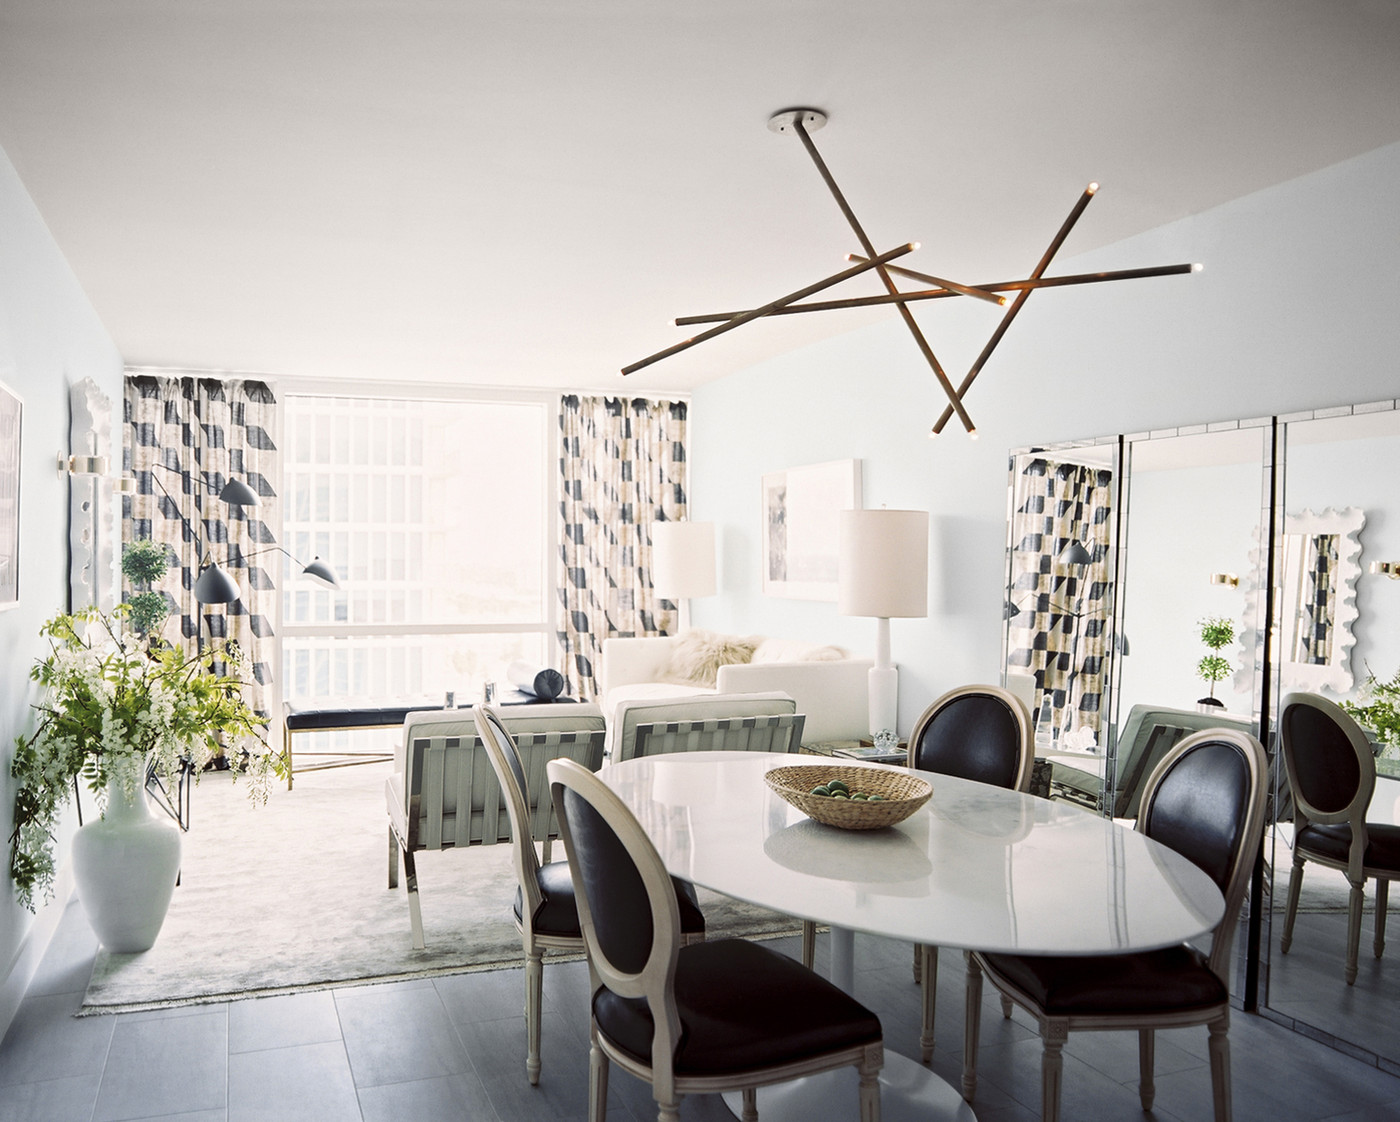 Modern Ceiling Light Fixture Photos Design Ideas Remodel And Decor Lonny